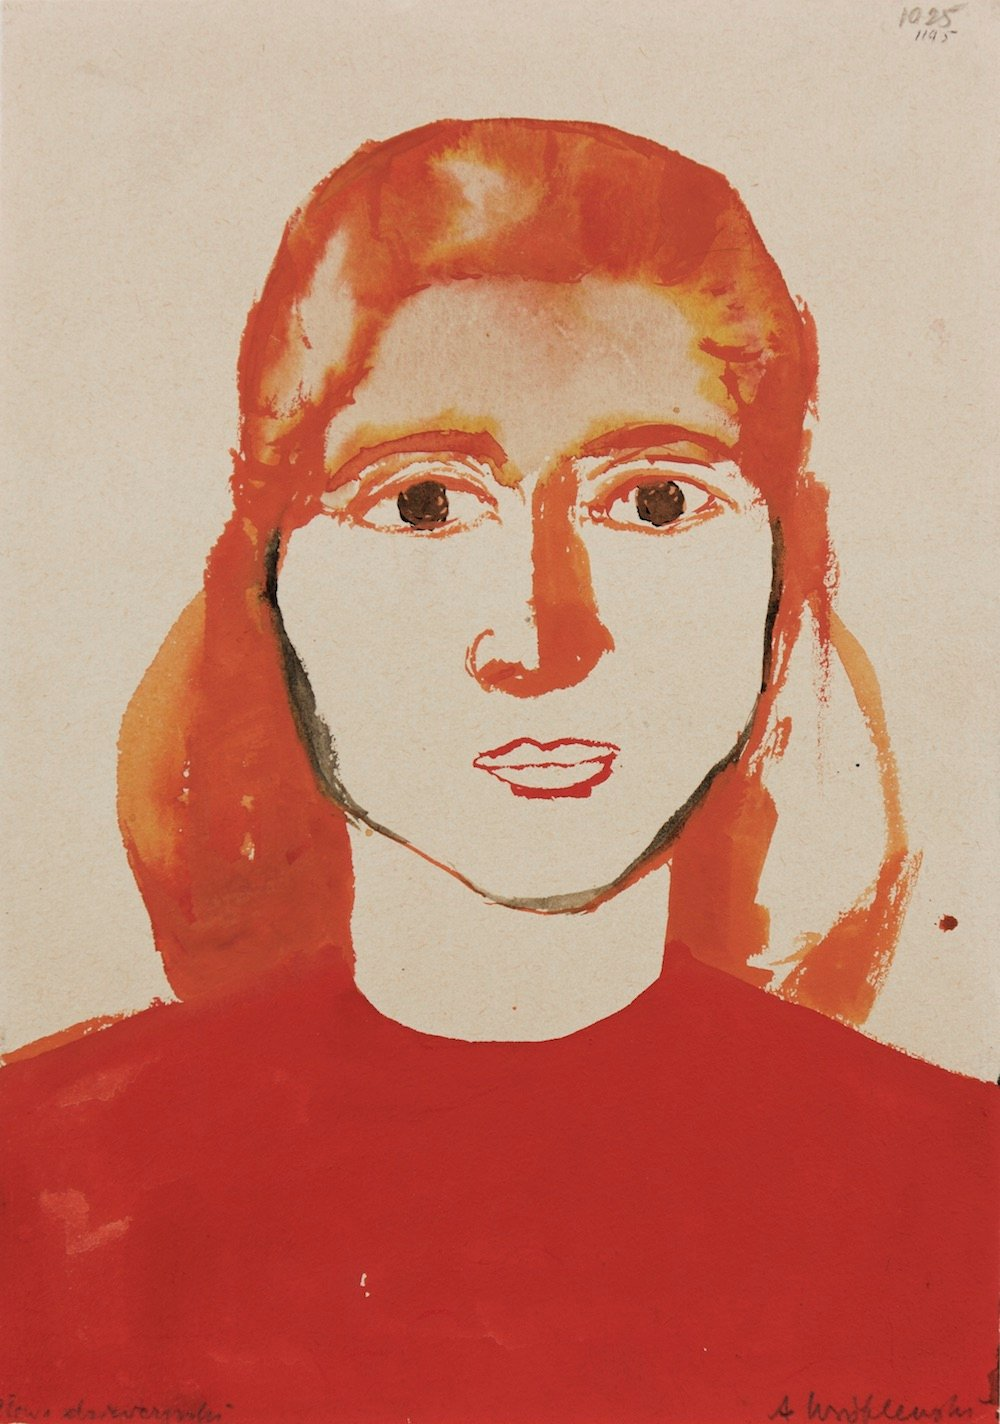 (Head of a Girl), [Head of a Girl no.1025], Undated Watercolour on paper, 29.7 x 21 cm. Private Collection  © Andrzej Wróblewski Foundation